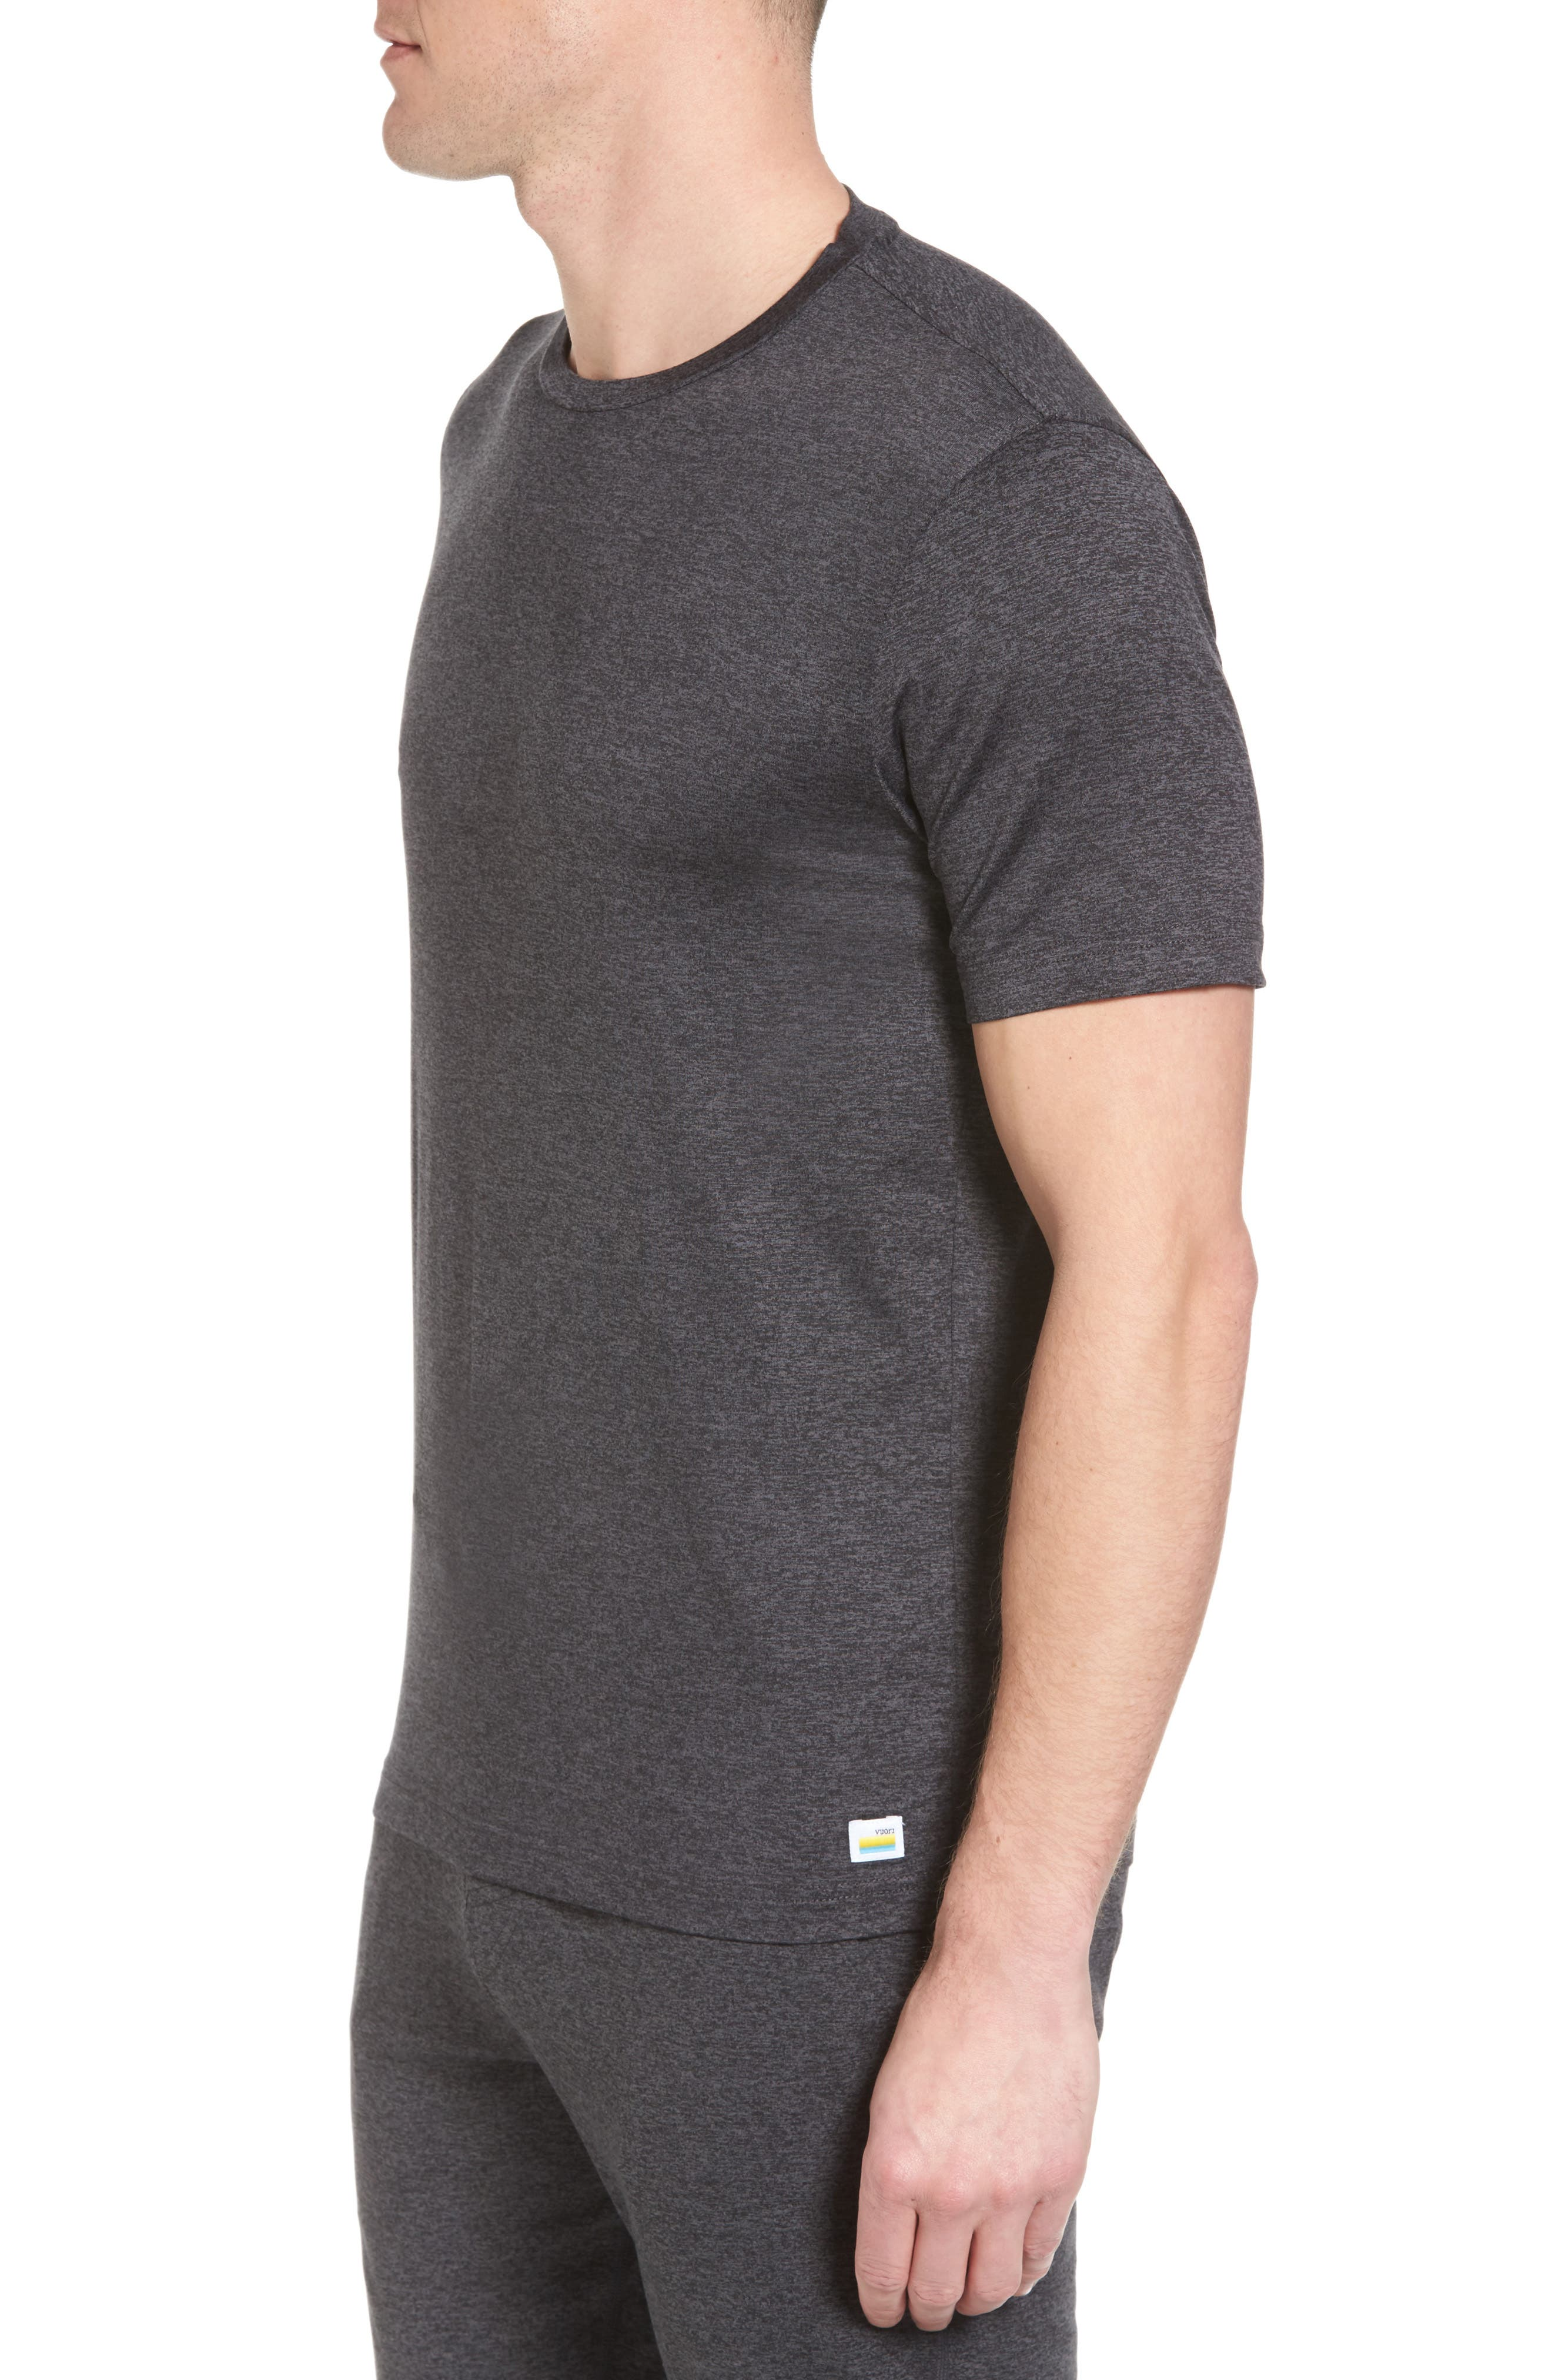 Strato Slim Fit Crewneck T-Shirt,                             Alternate thumbnail 3, color,                             HEATHER CHARCOAL